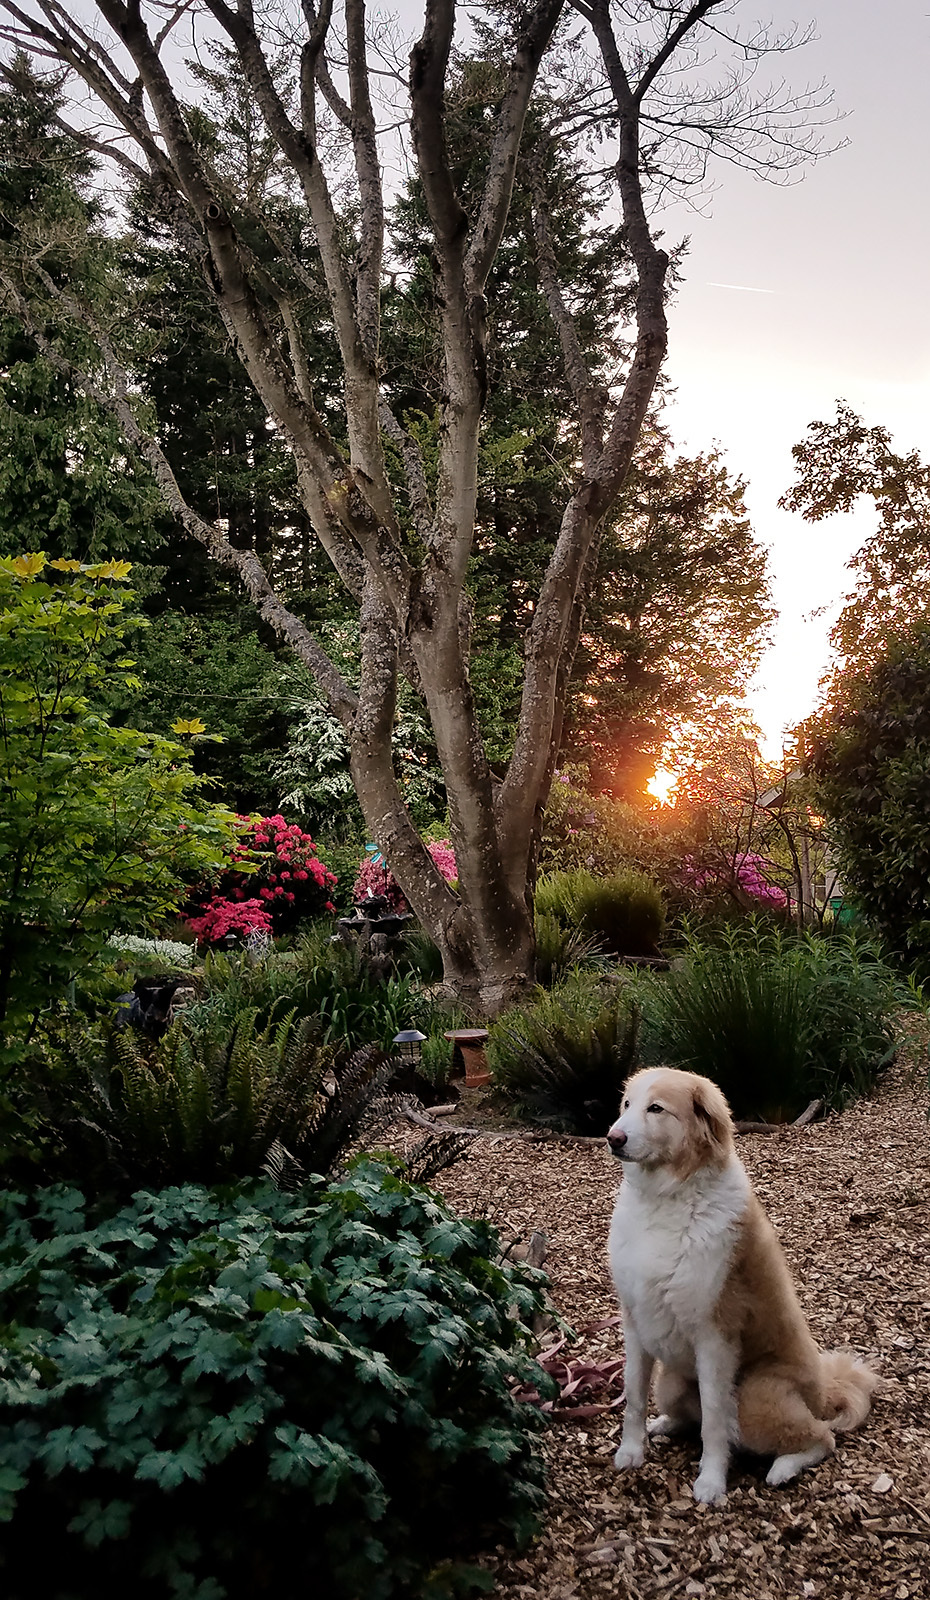 Maggie in the garden at sunset - 2019